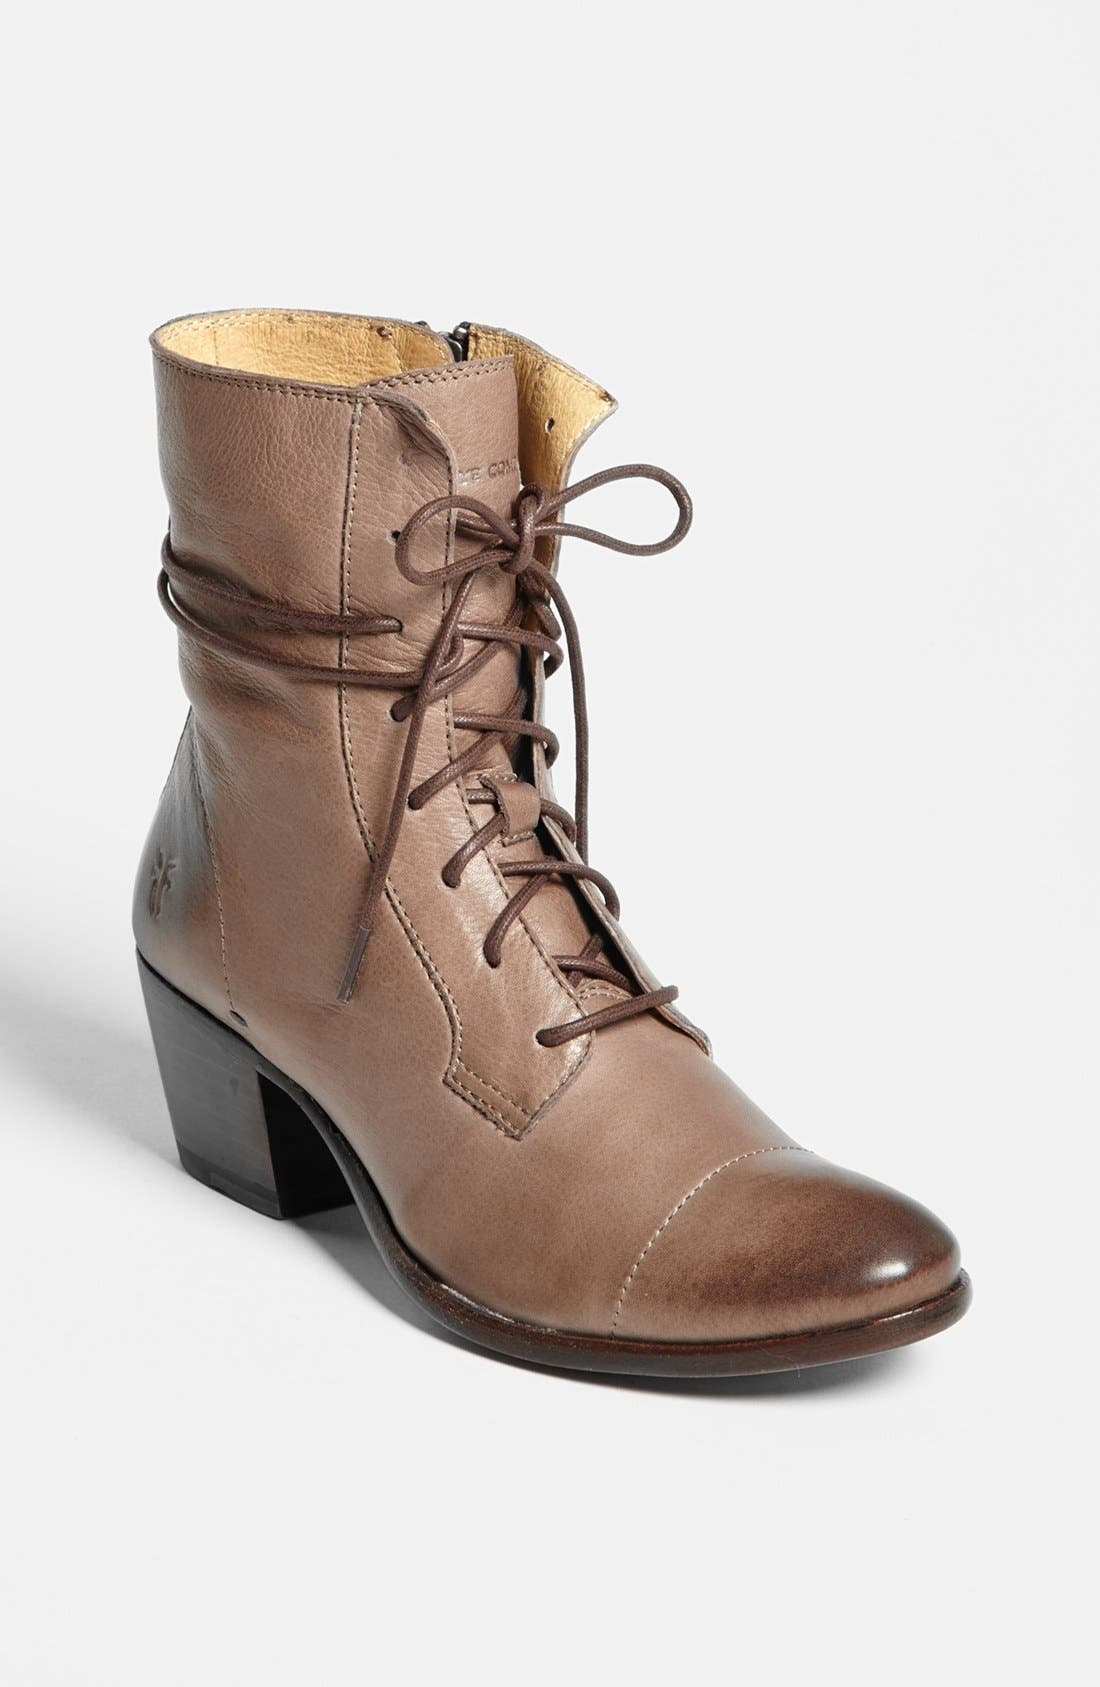 Alternate Image 1 Selected - Frye 'Courtney' Boot